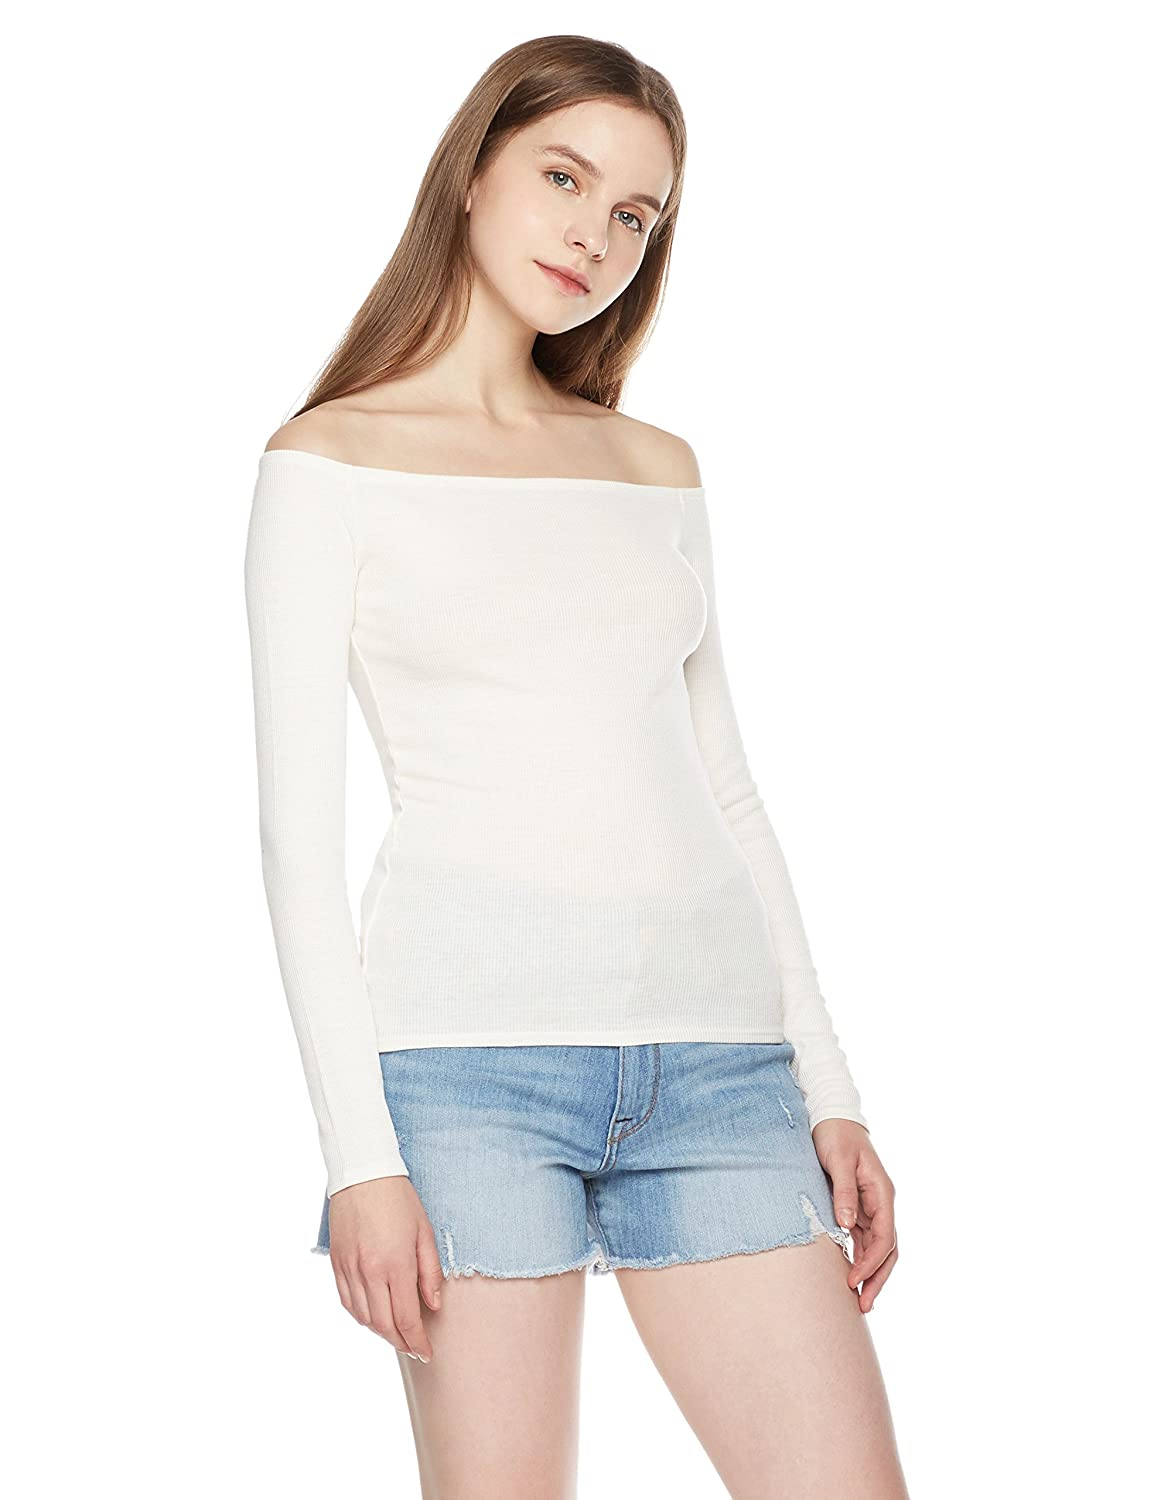 c5dd5e6149cd89 Ribbed jersey top featuring off-shoulder design with long sleeves and  form-fitting silhouette